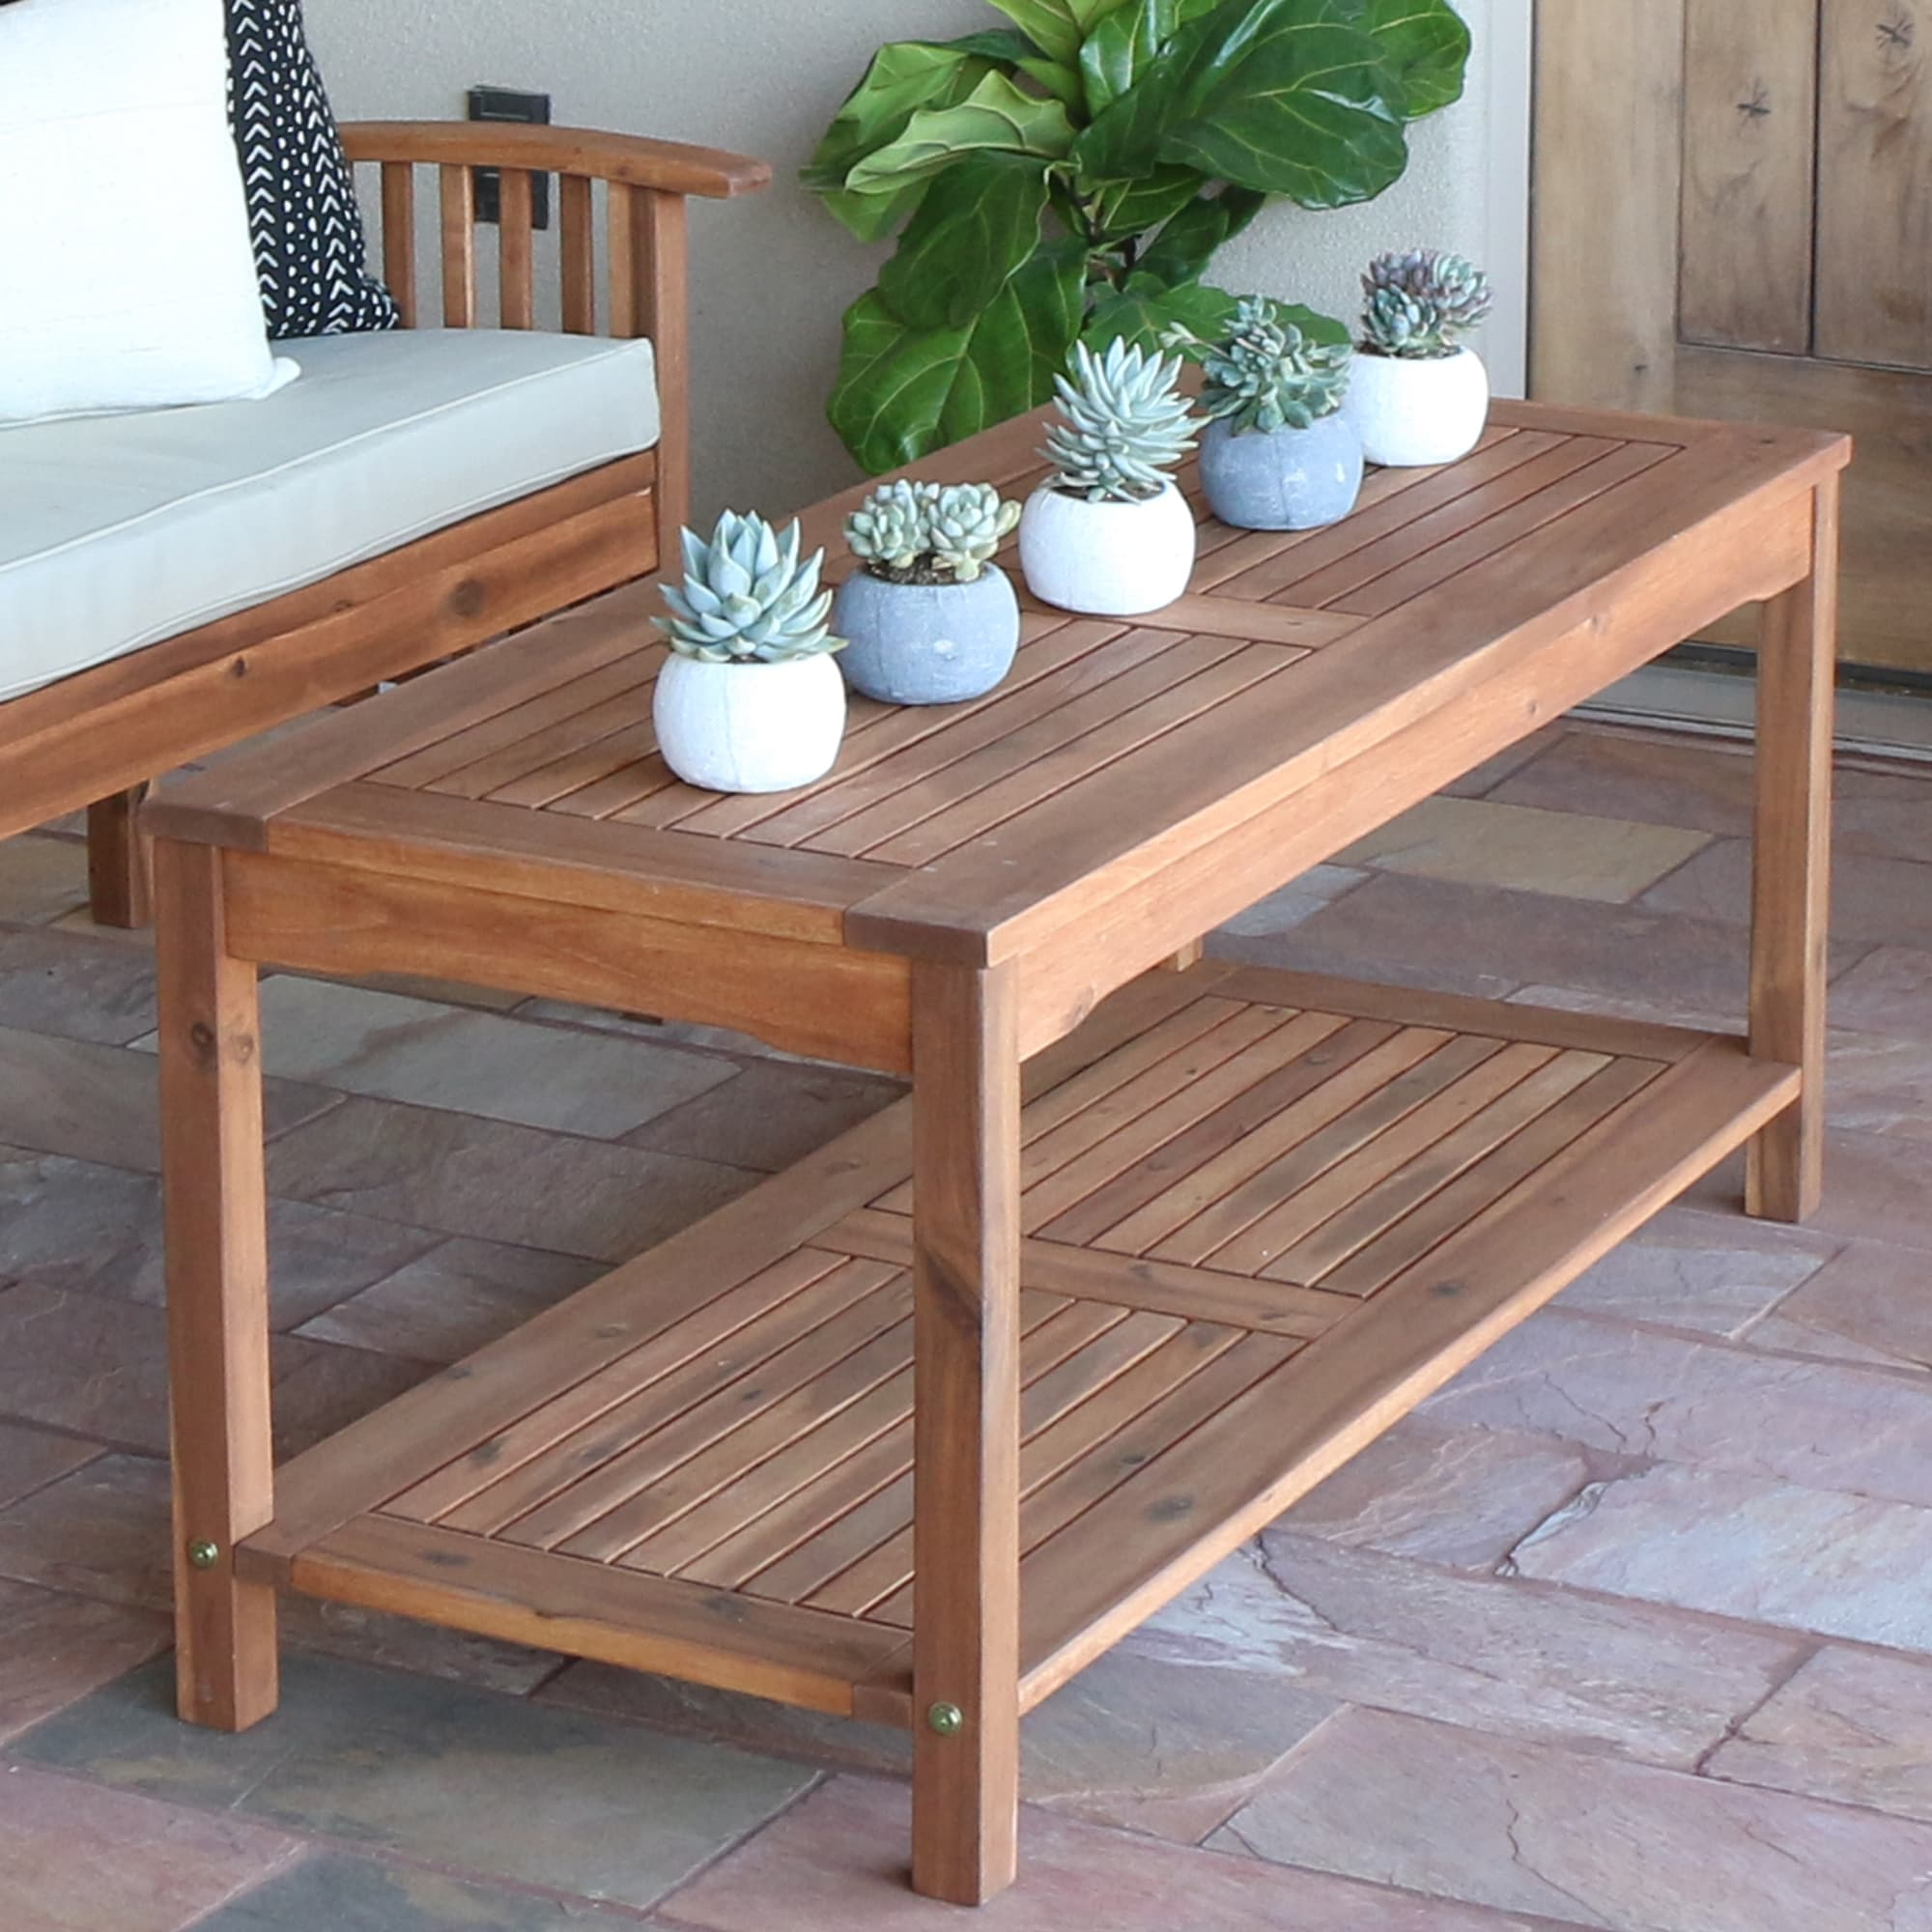 outdoor coffee side tables our best acacia wood inch brown patio table folding end furniture aluminum chairs pretty bedside lamps funky accent hidden storage rattan miami carolina